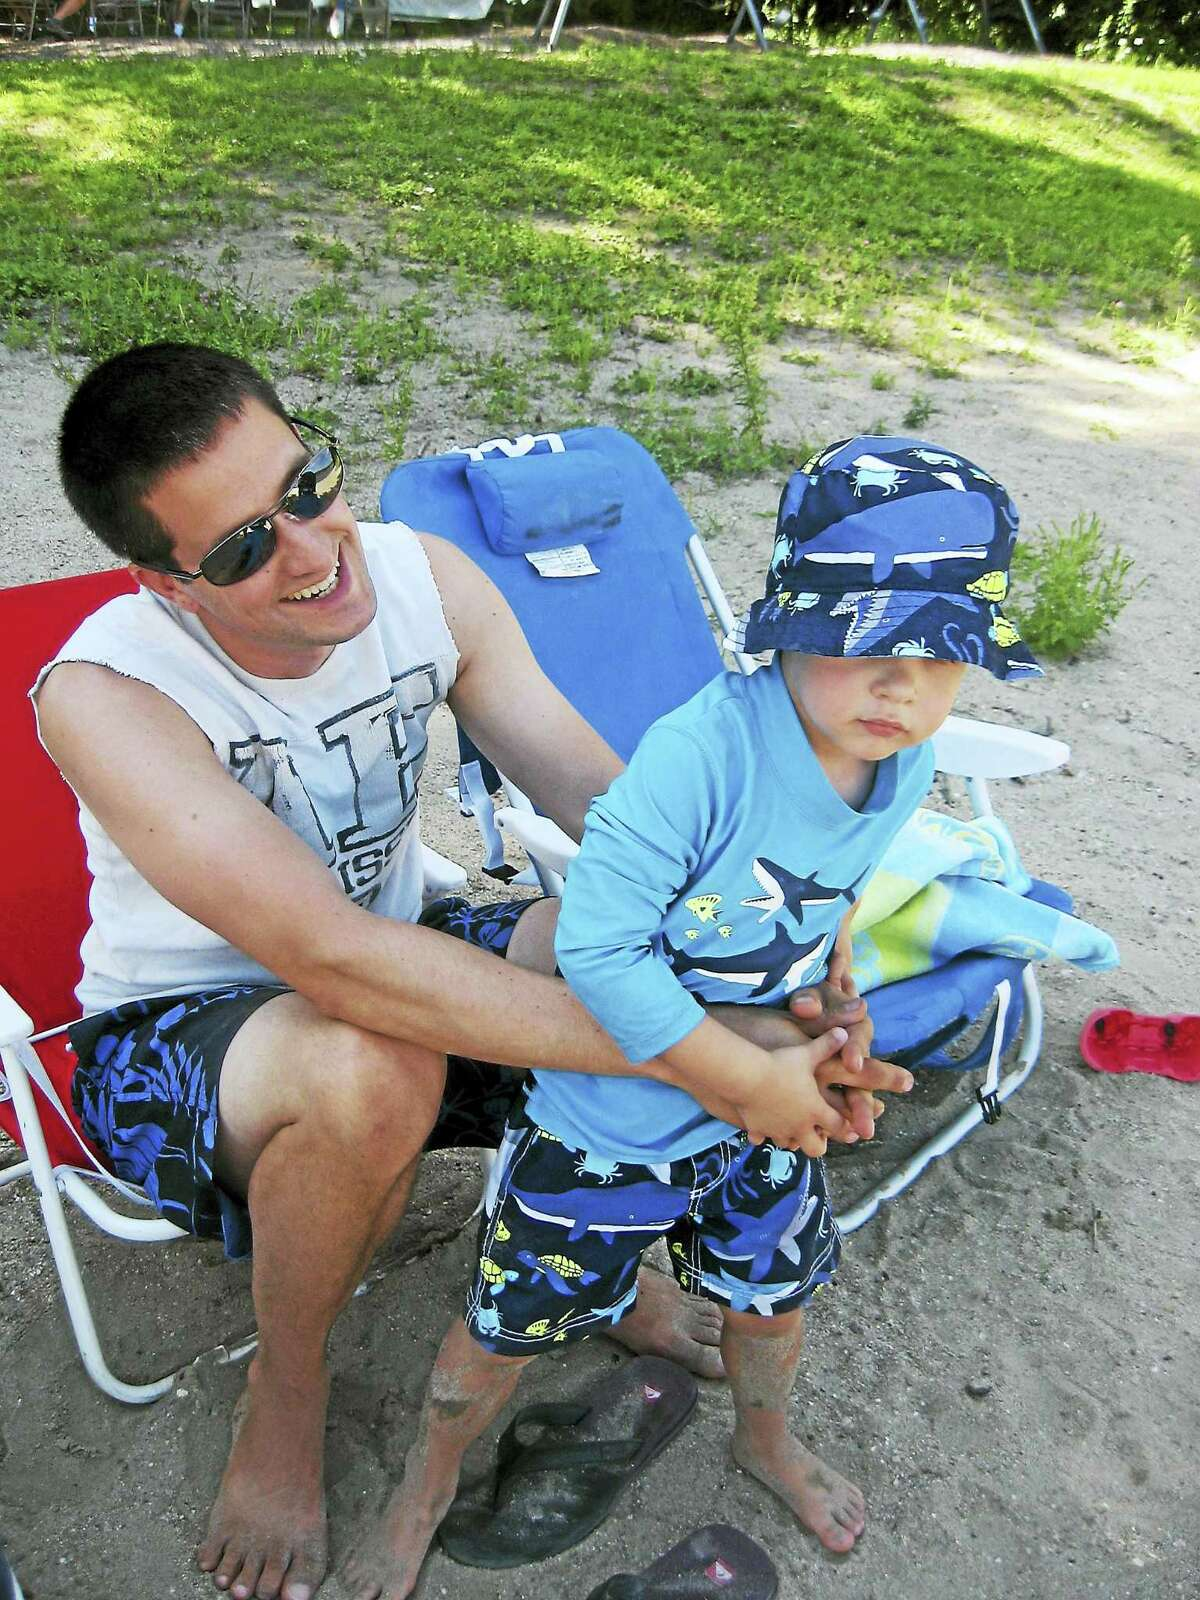 E.J. Yerzak and his son, Brady, at Morris Town Beach.